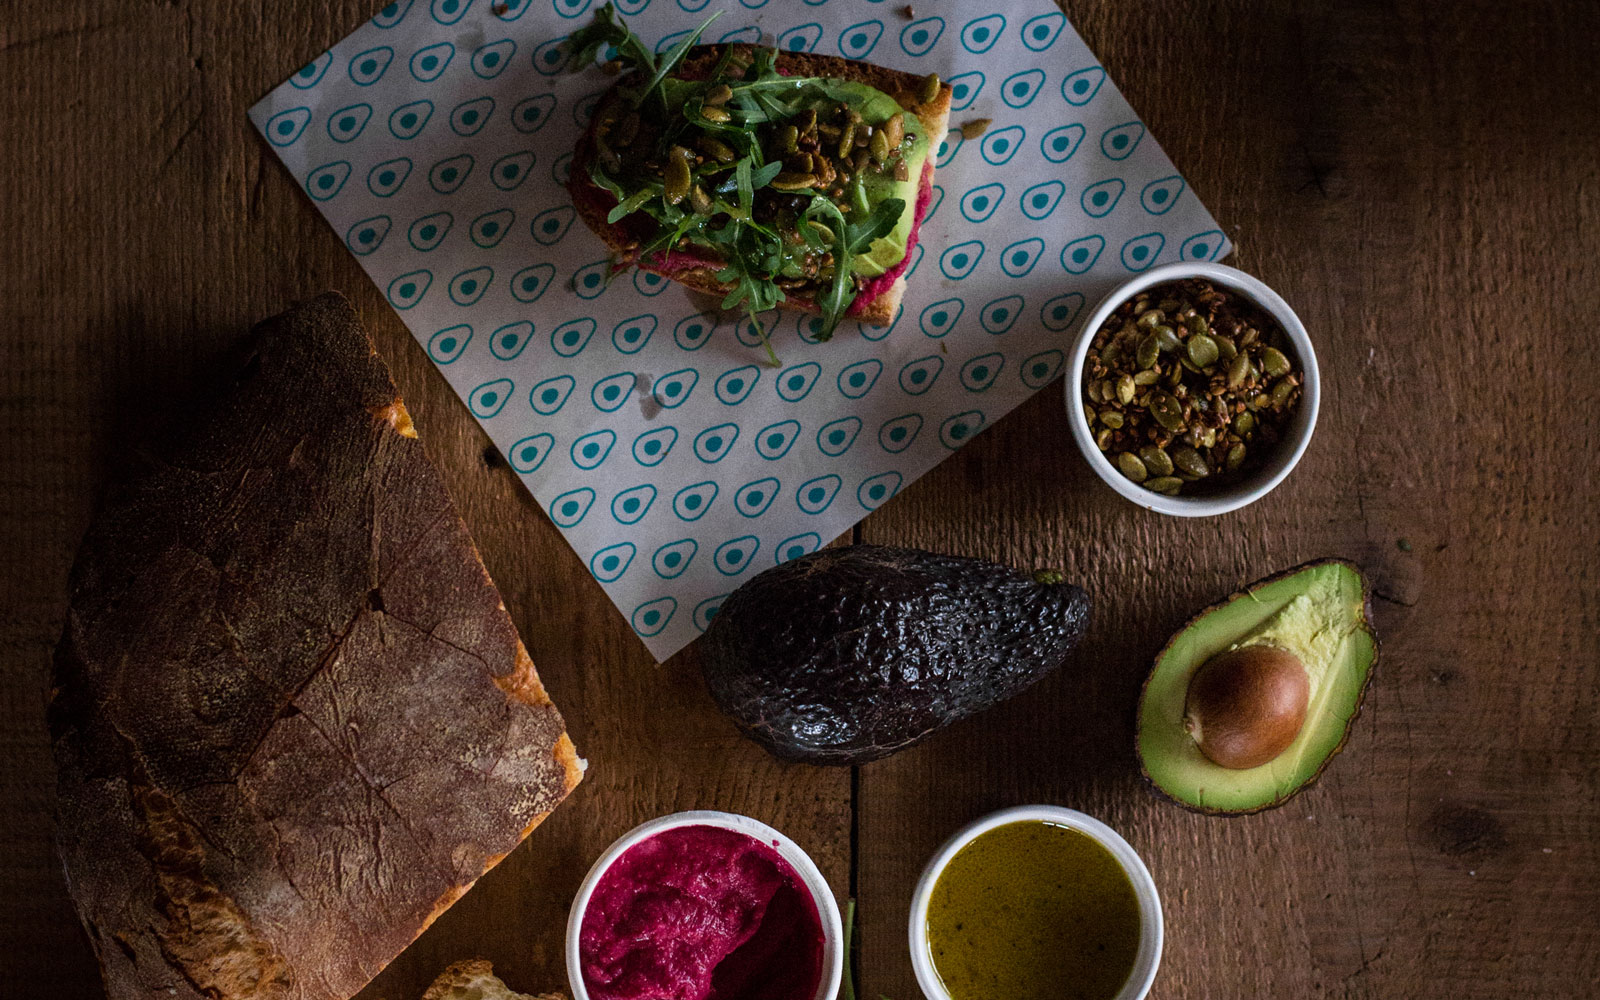 avocado-beet-hummus-toast-AVOCADO417.jpg